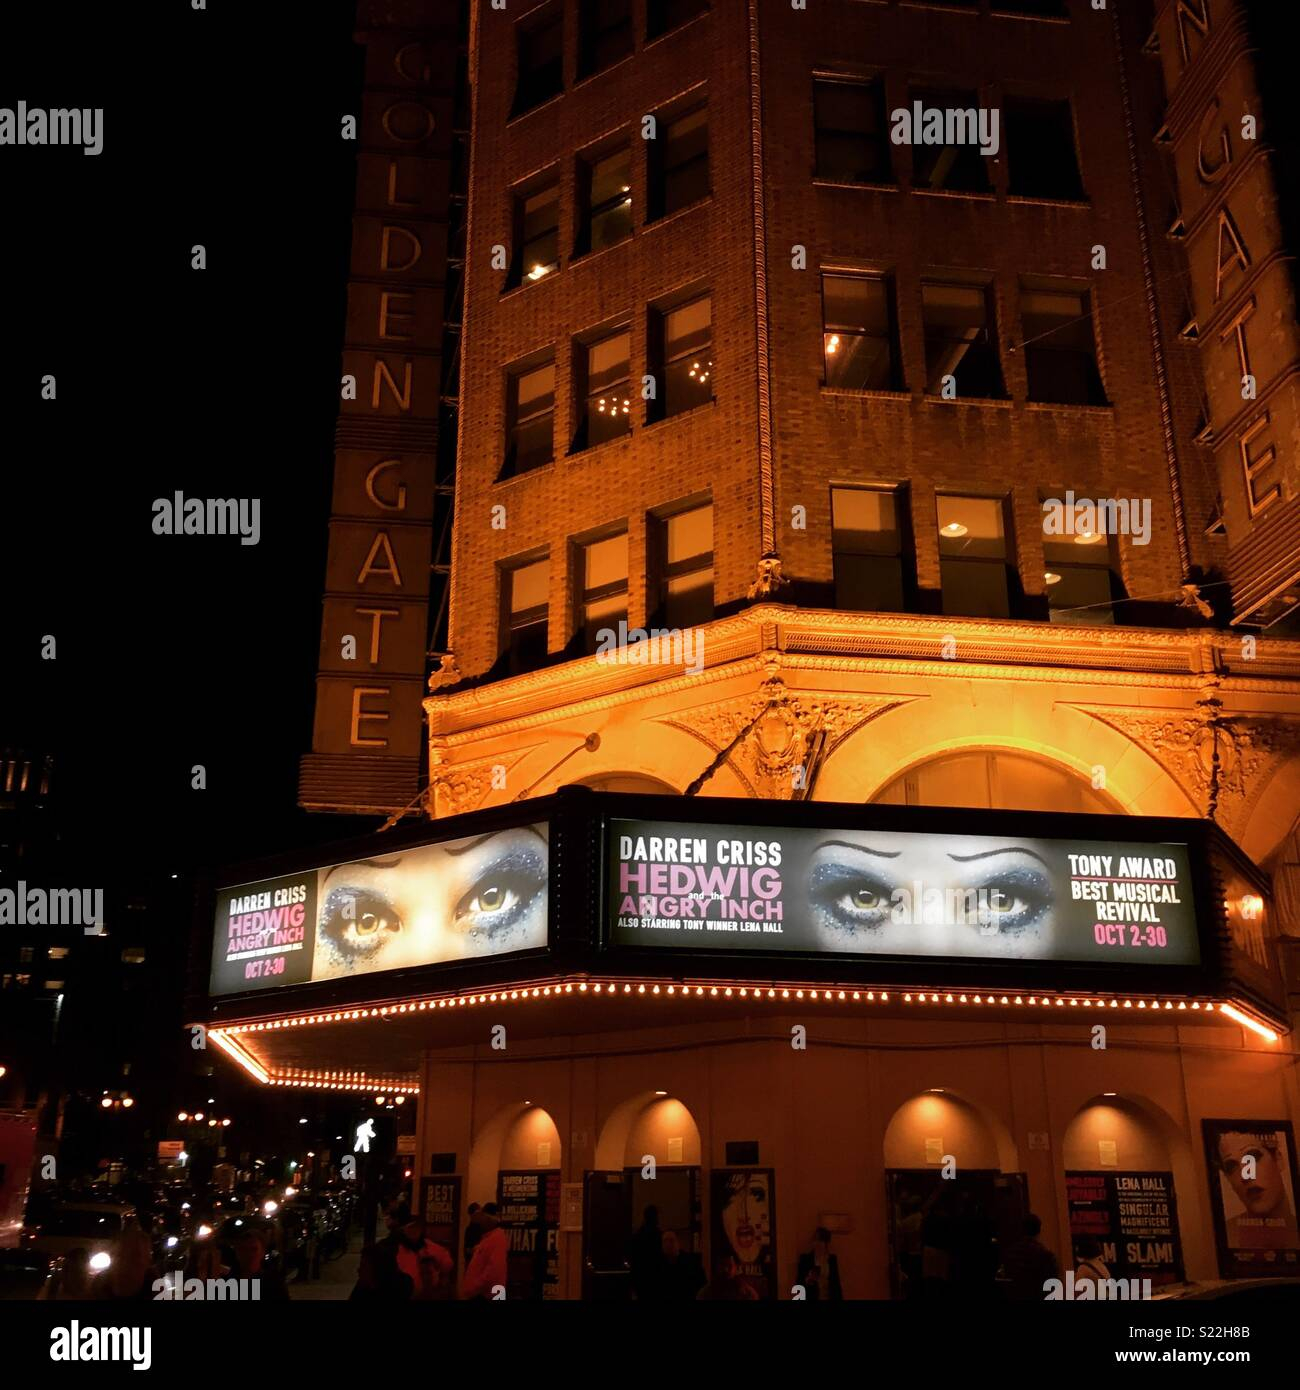 Golden Gate Theatre at night during the run of Hedwig and the Angry Inch starring Darren Criss - Stock Image